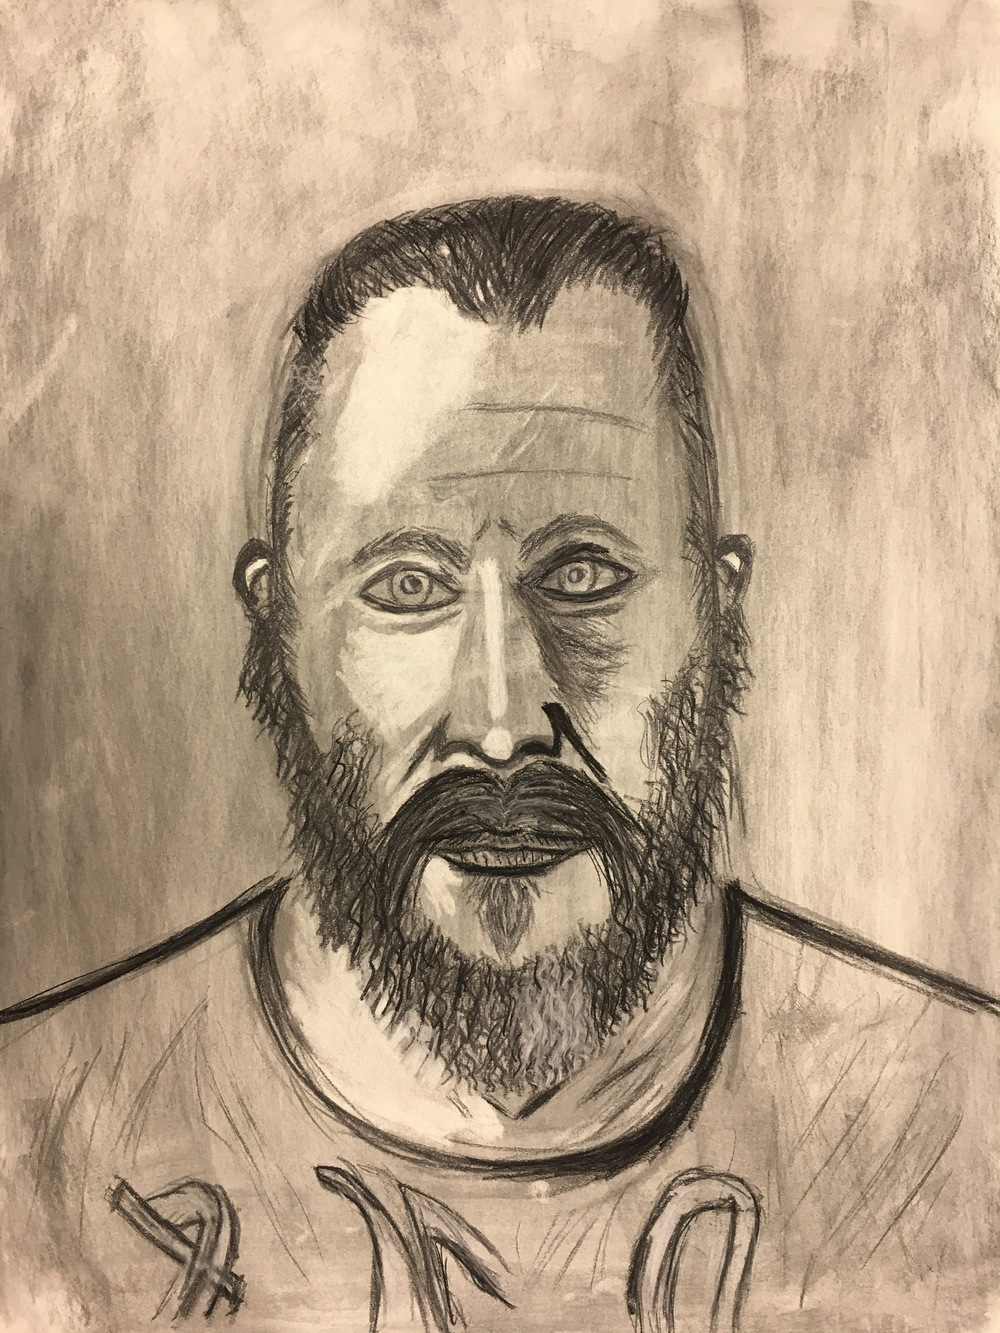 Drawing I: Self Portrait Project